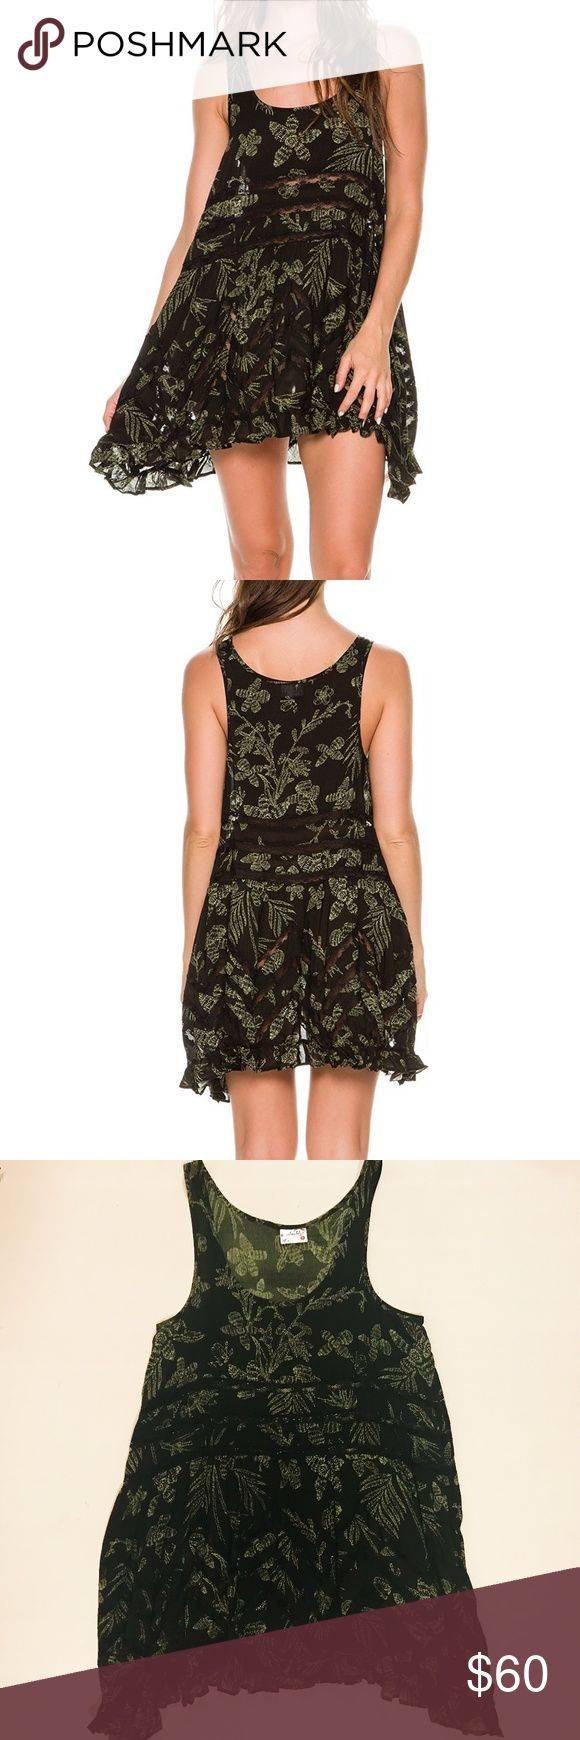 Free People Voile and Lace Trapeze Slip Dress Like new Free People Voile and Lace Trapeze mini dress in black with green leaf palm print throughout. Sheer black with ruffled trim and lace inset. Unlined. 100% Rayon. EUC. Free People Dresses Mini